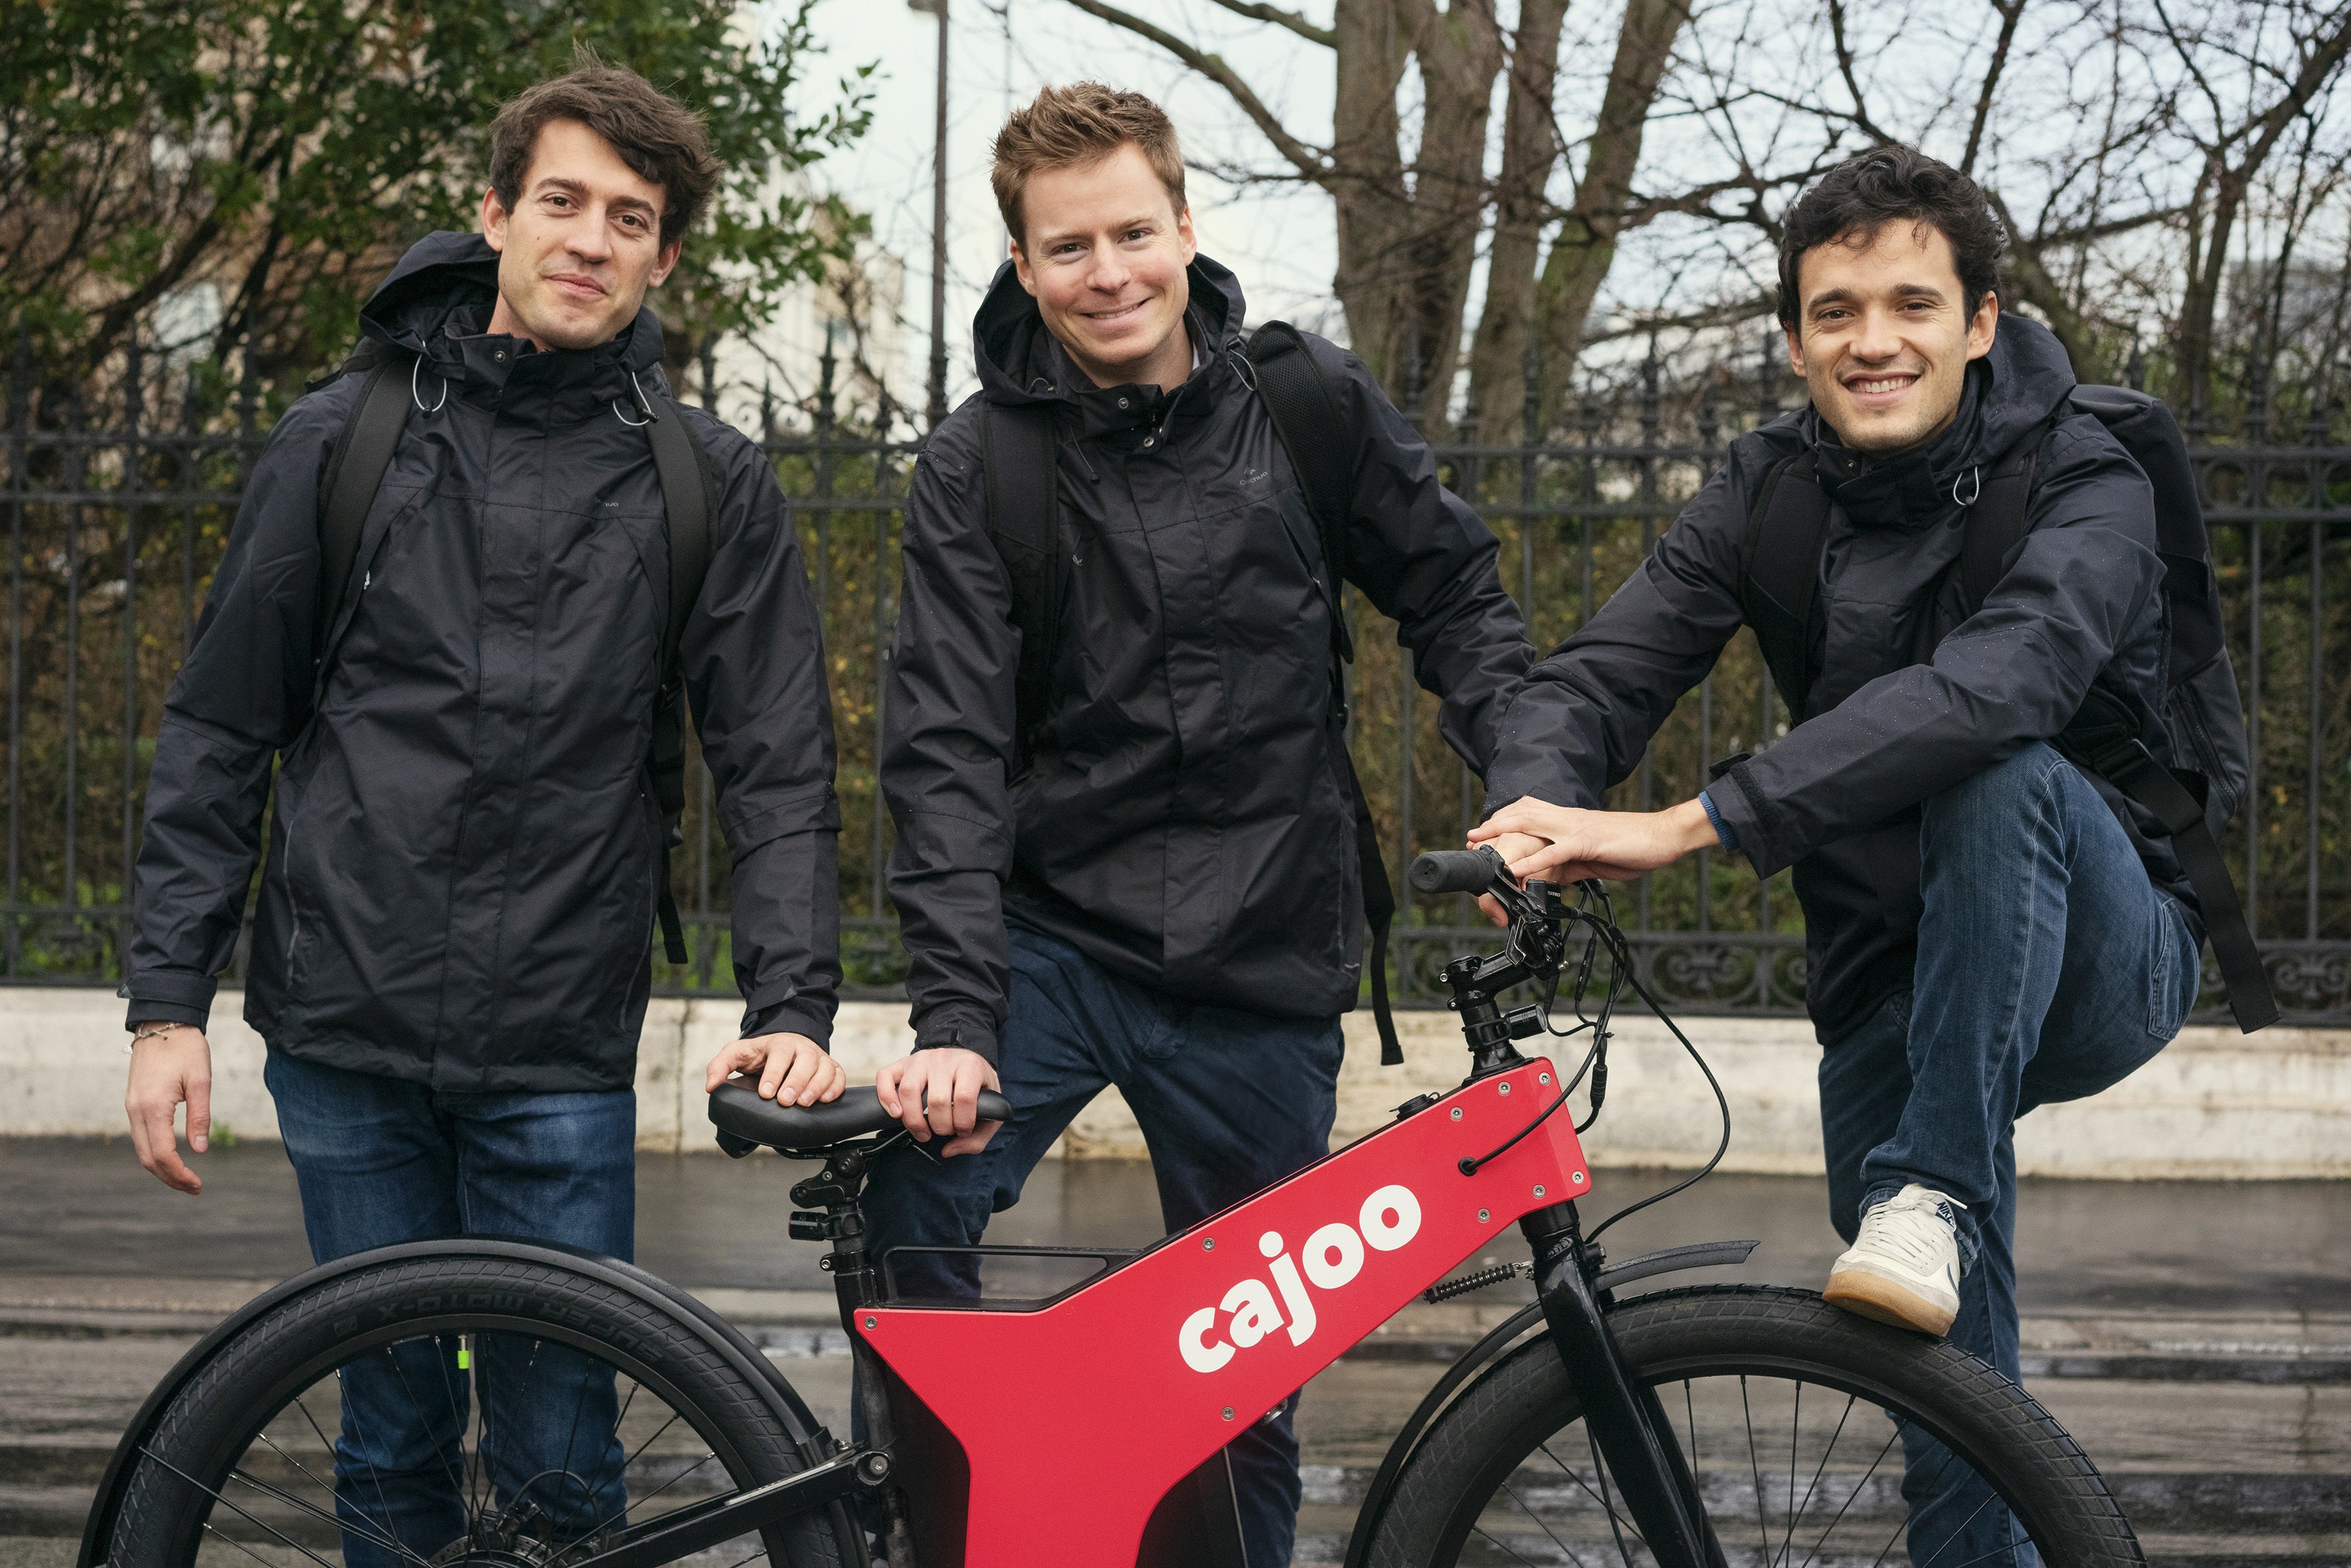 Cajoo promises grocery deliveries in 15 minutes